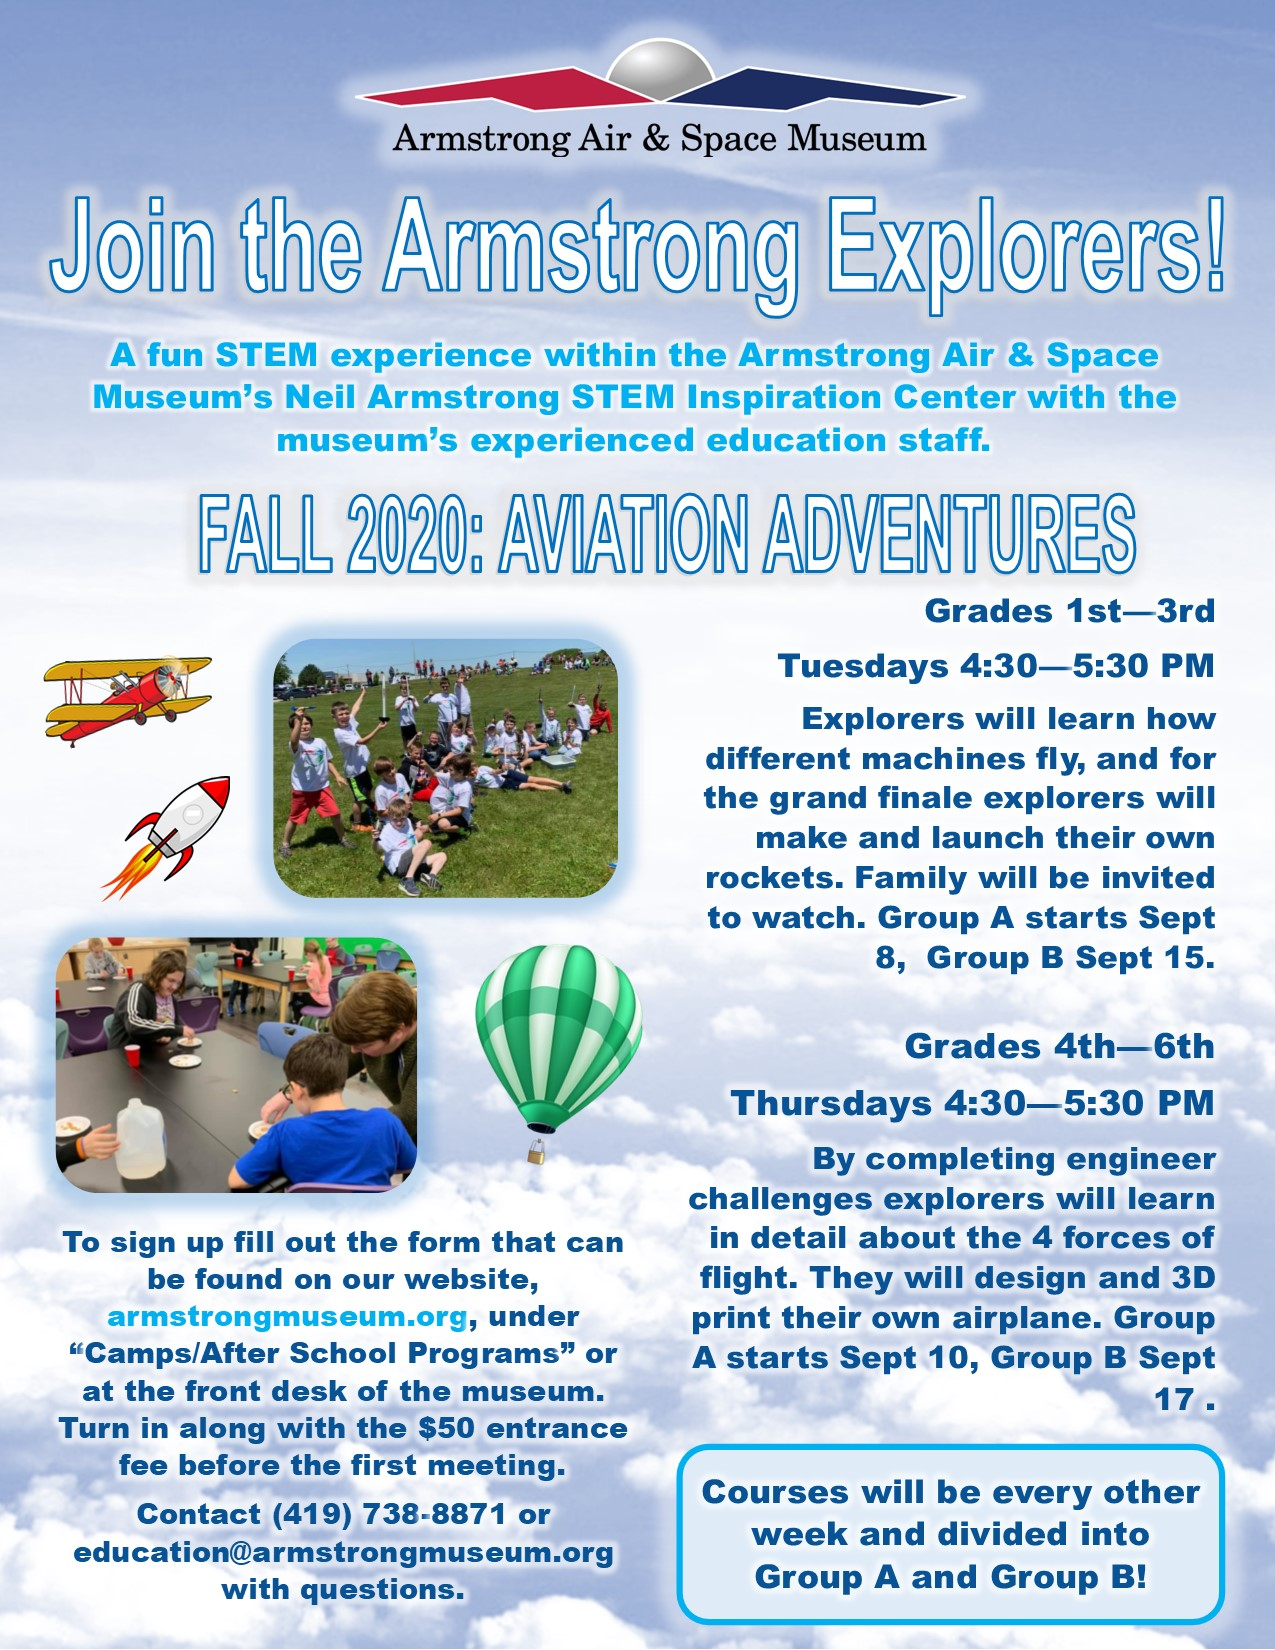 Armstrong Explorers Fall 2020